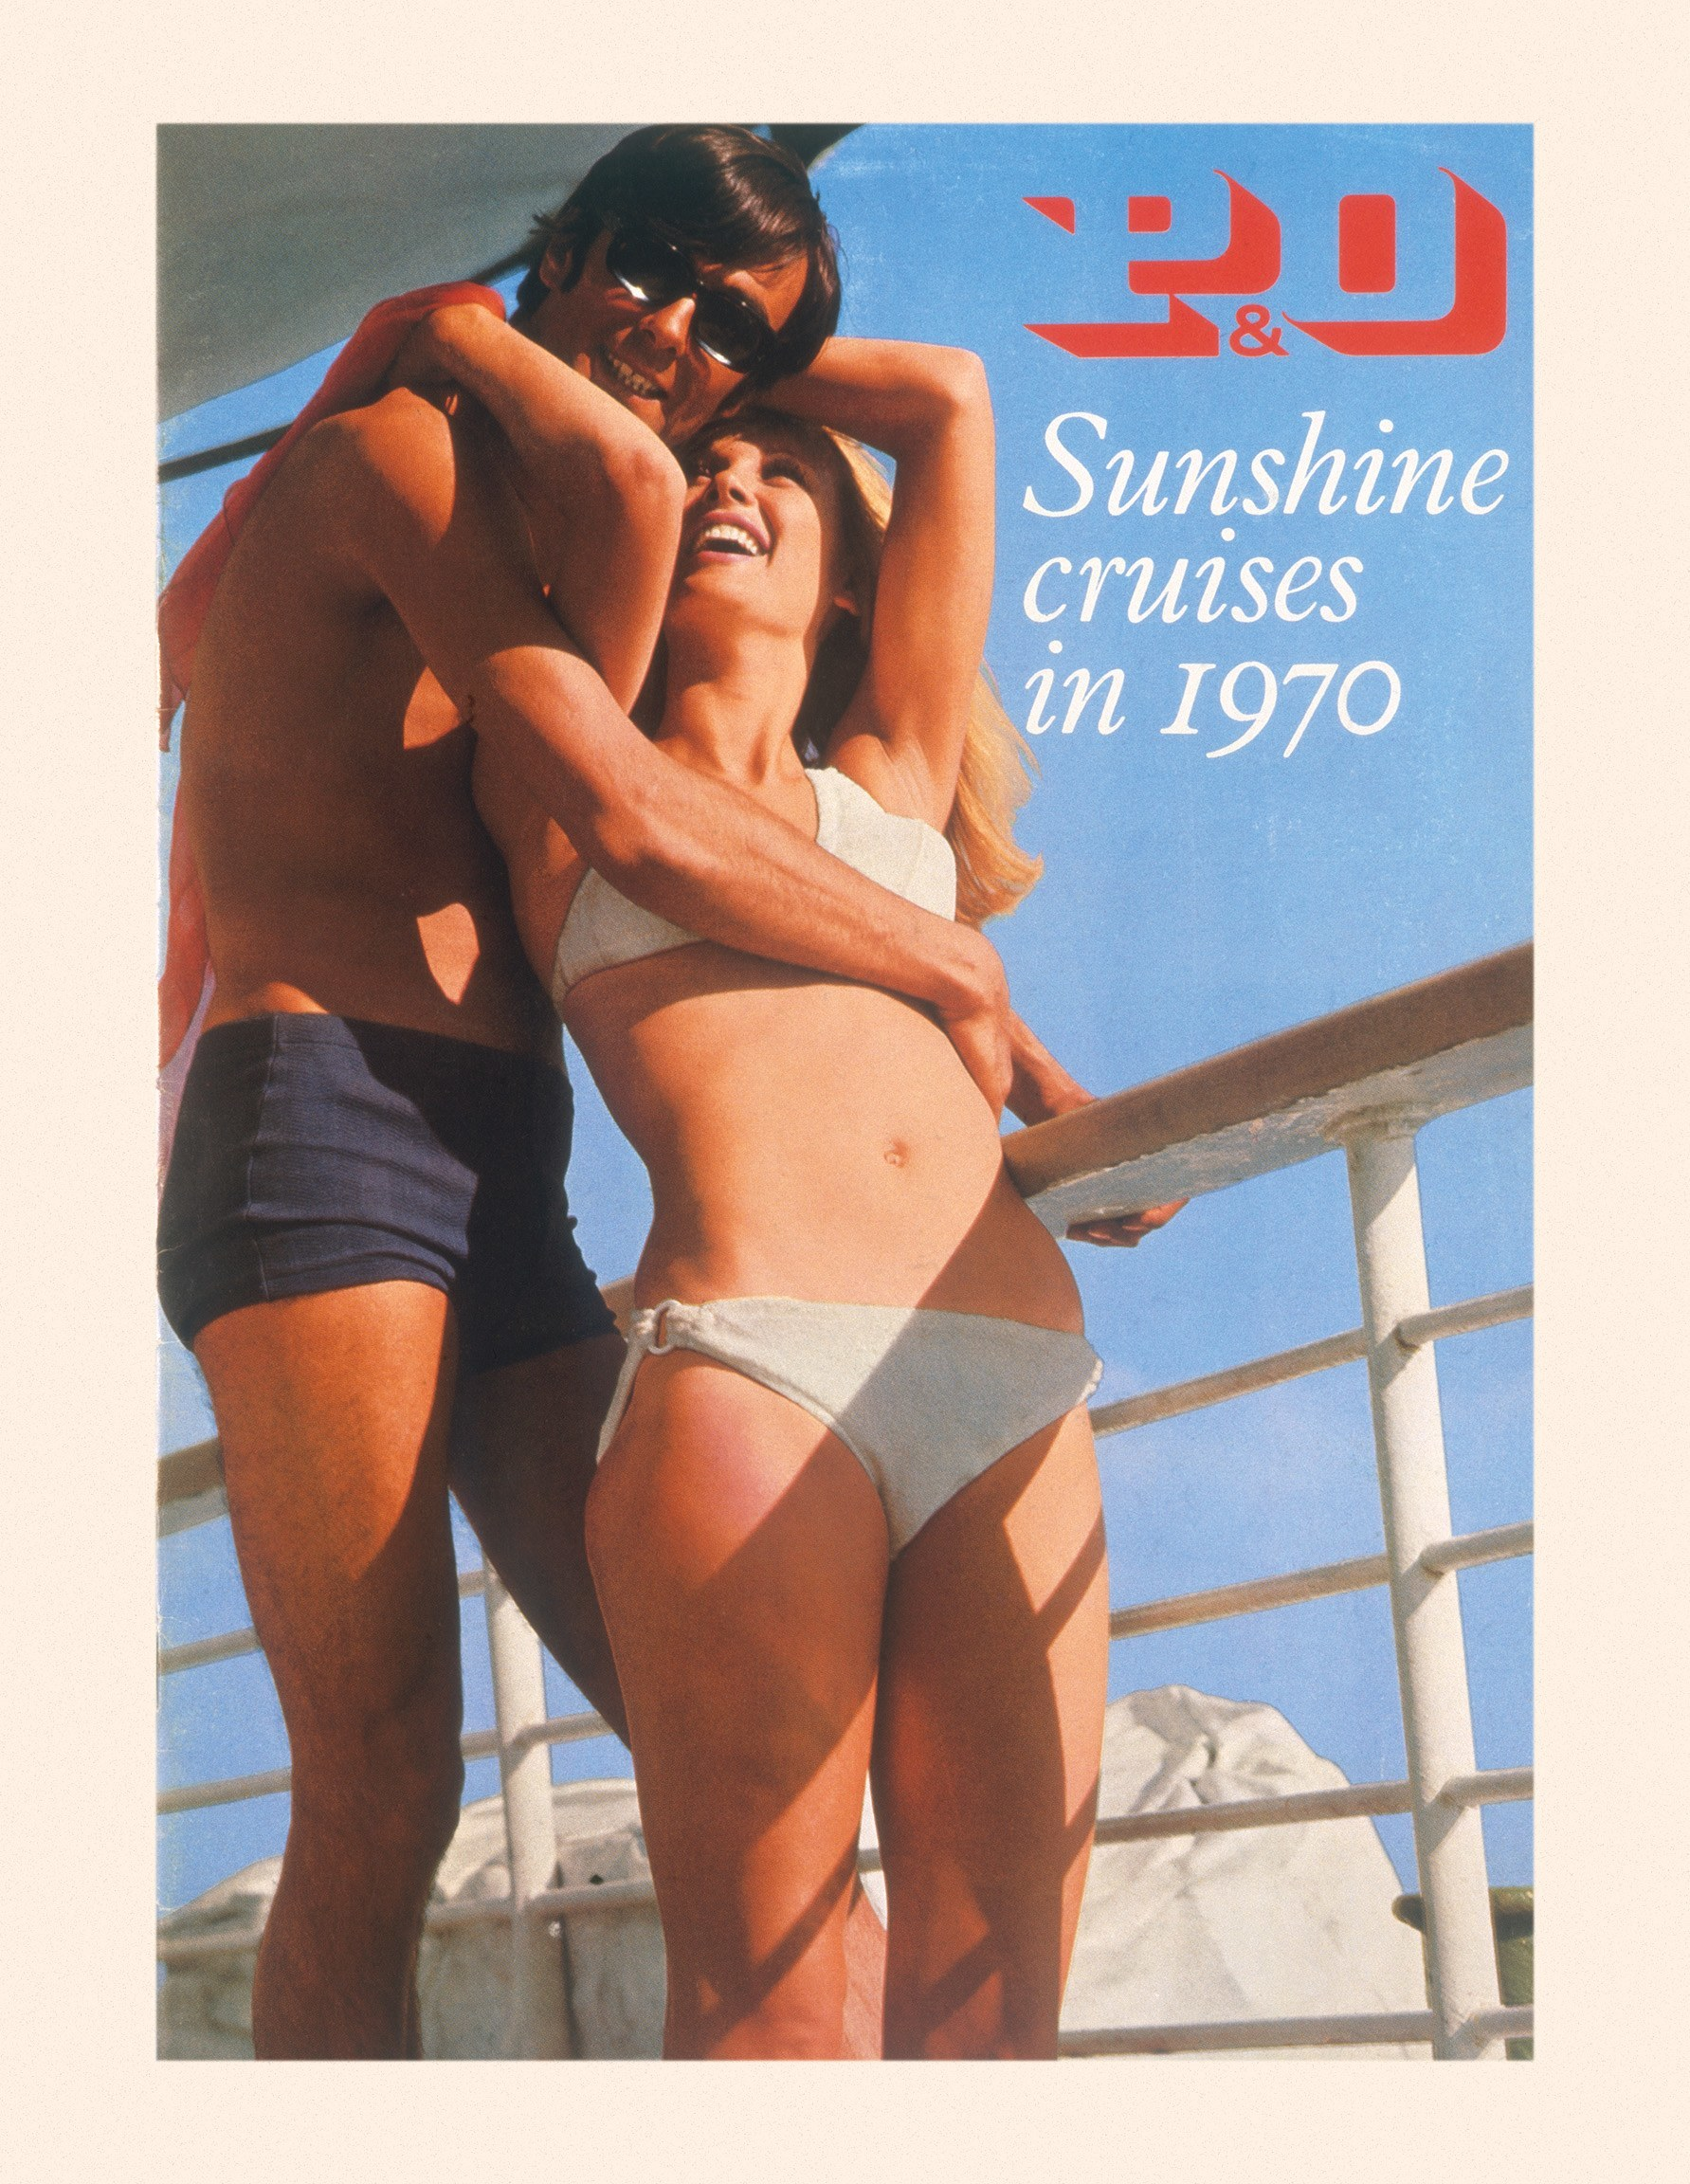 P&O Sunshine Cruises in 1970.